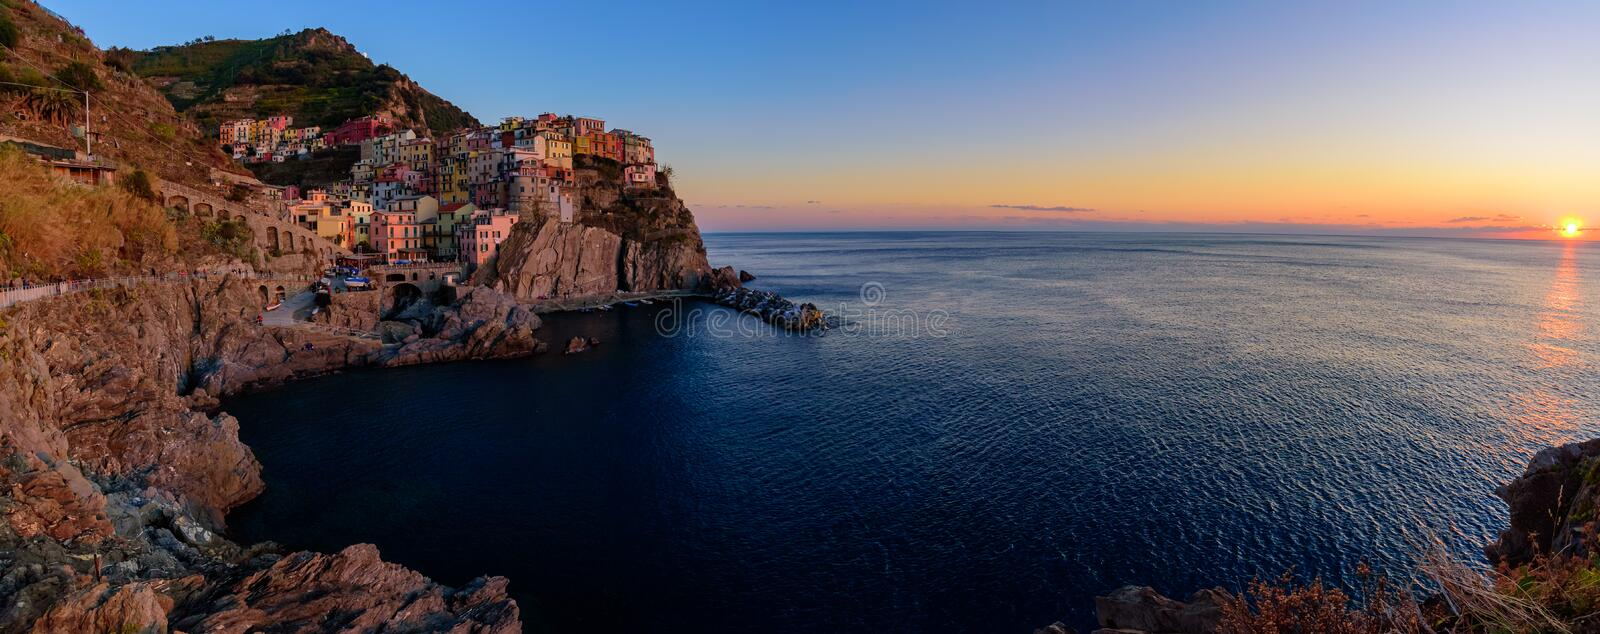 Sunset and night view of Manarola, one of the five Mediterranean villages in Cinque Terre, Italy, famous for its colorful houses stock image